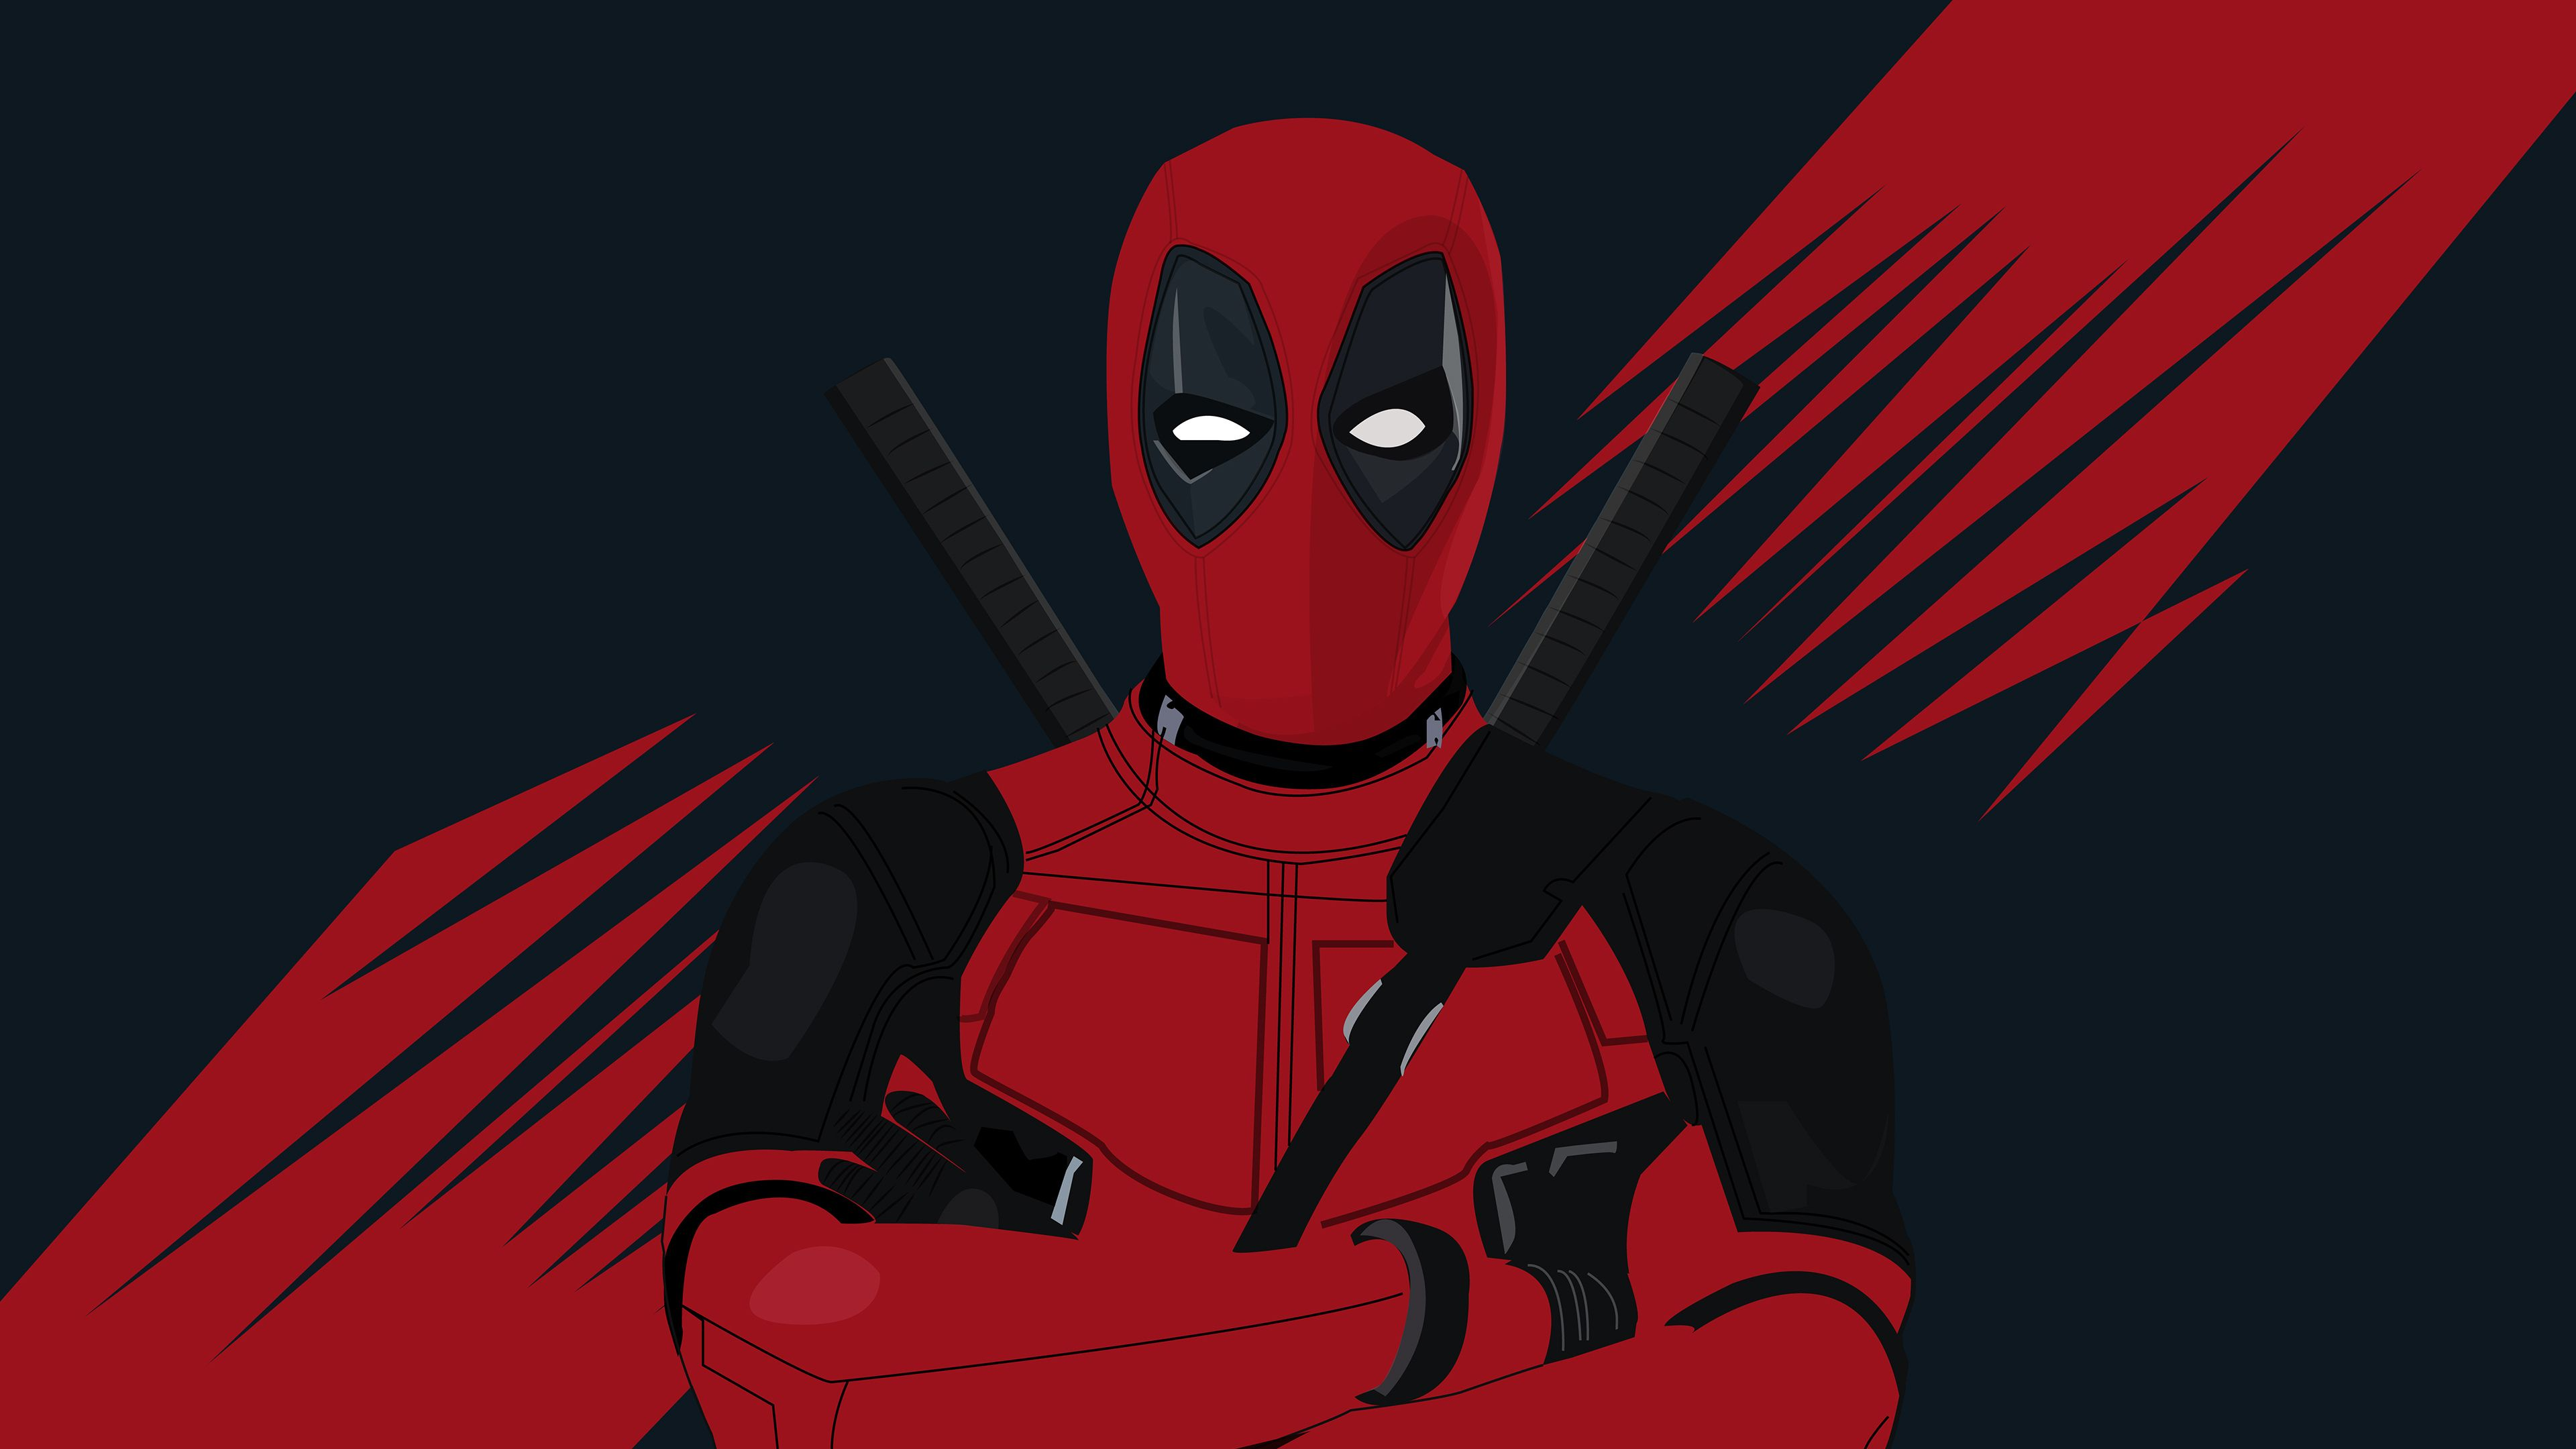 4k Deadpool Minimal 2019 Superheroes Wallpapers Hd Wallpapers Digital Art Wallpapers Deadpool Wall Deadpool Wallpaper Deadpool Hd Wallpaper Deadpool Artwork